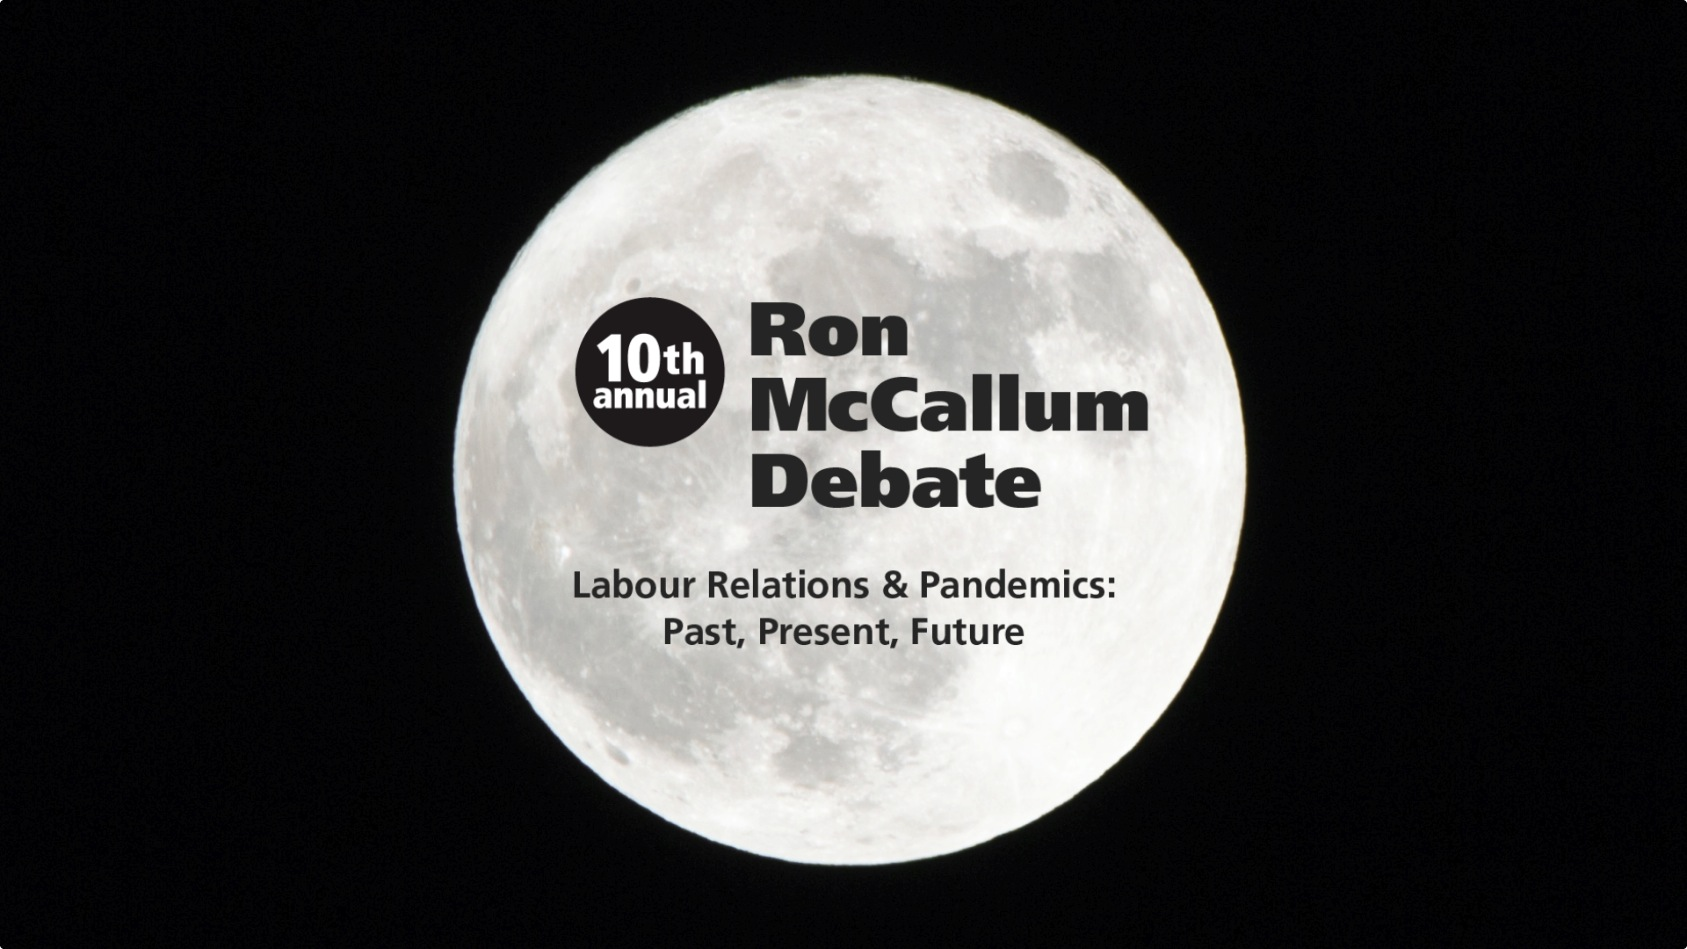 Labour Relations and Pandemics, Past, Present, Future